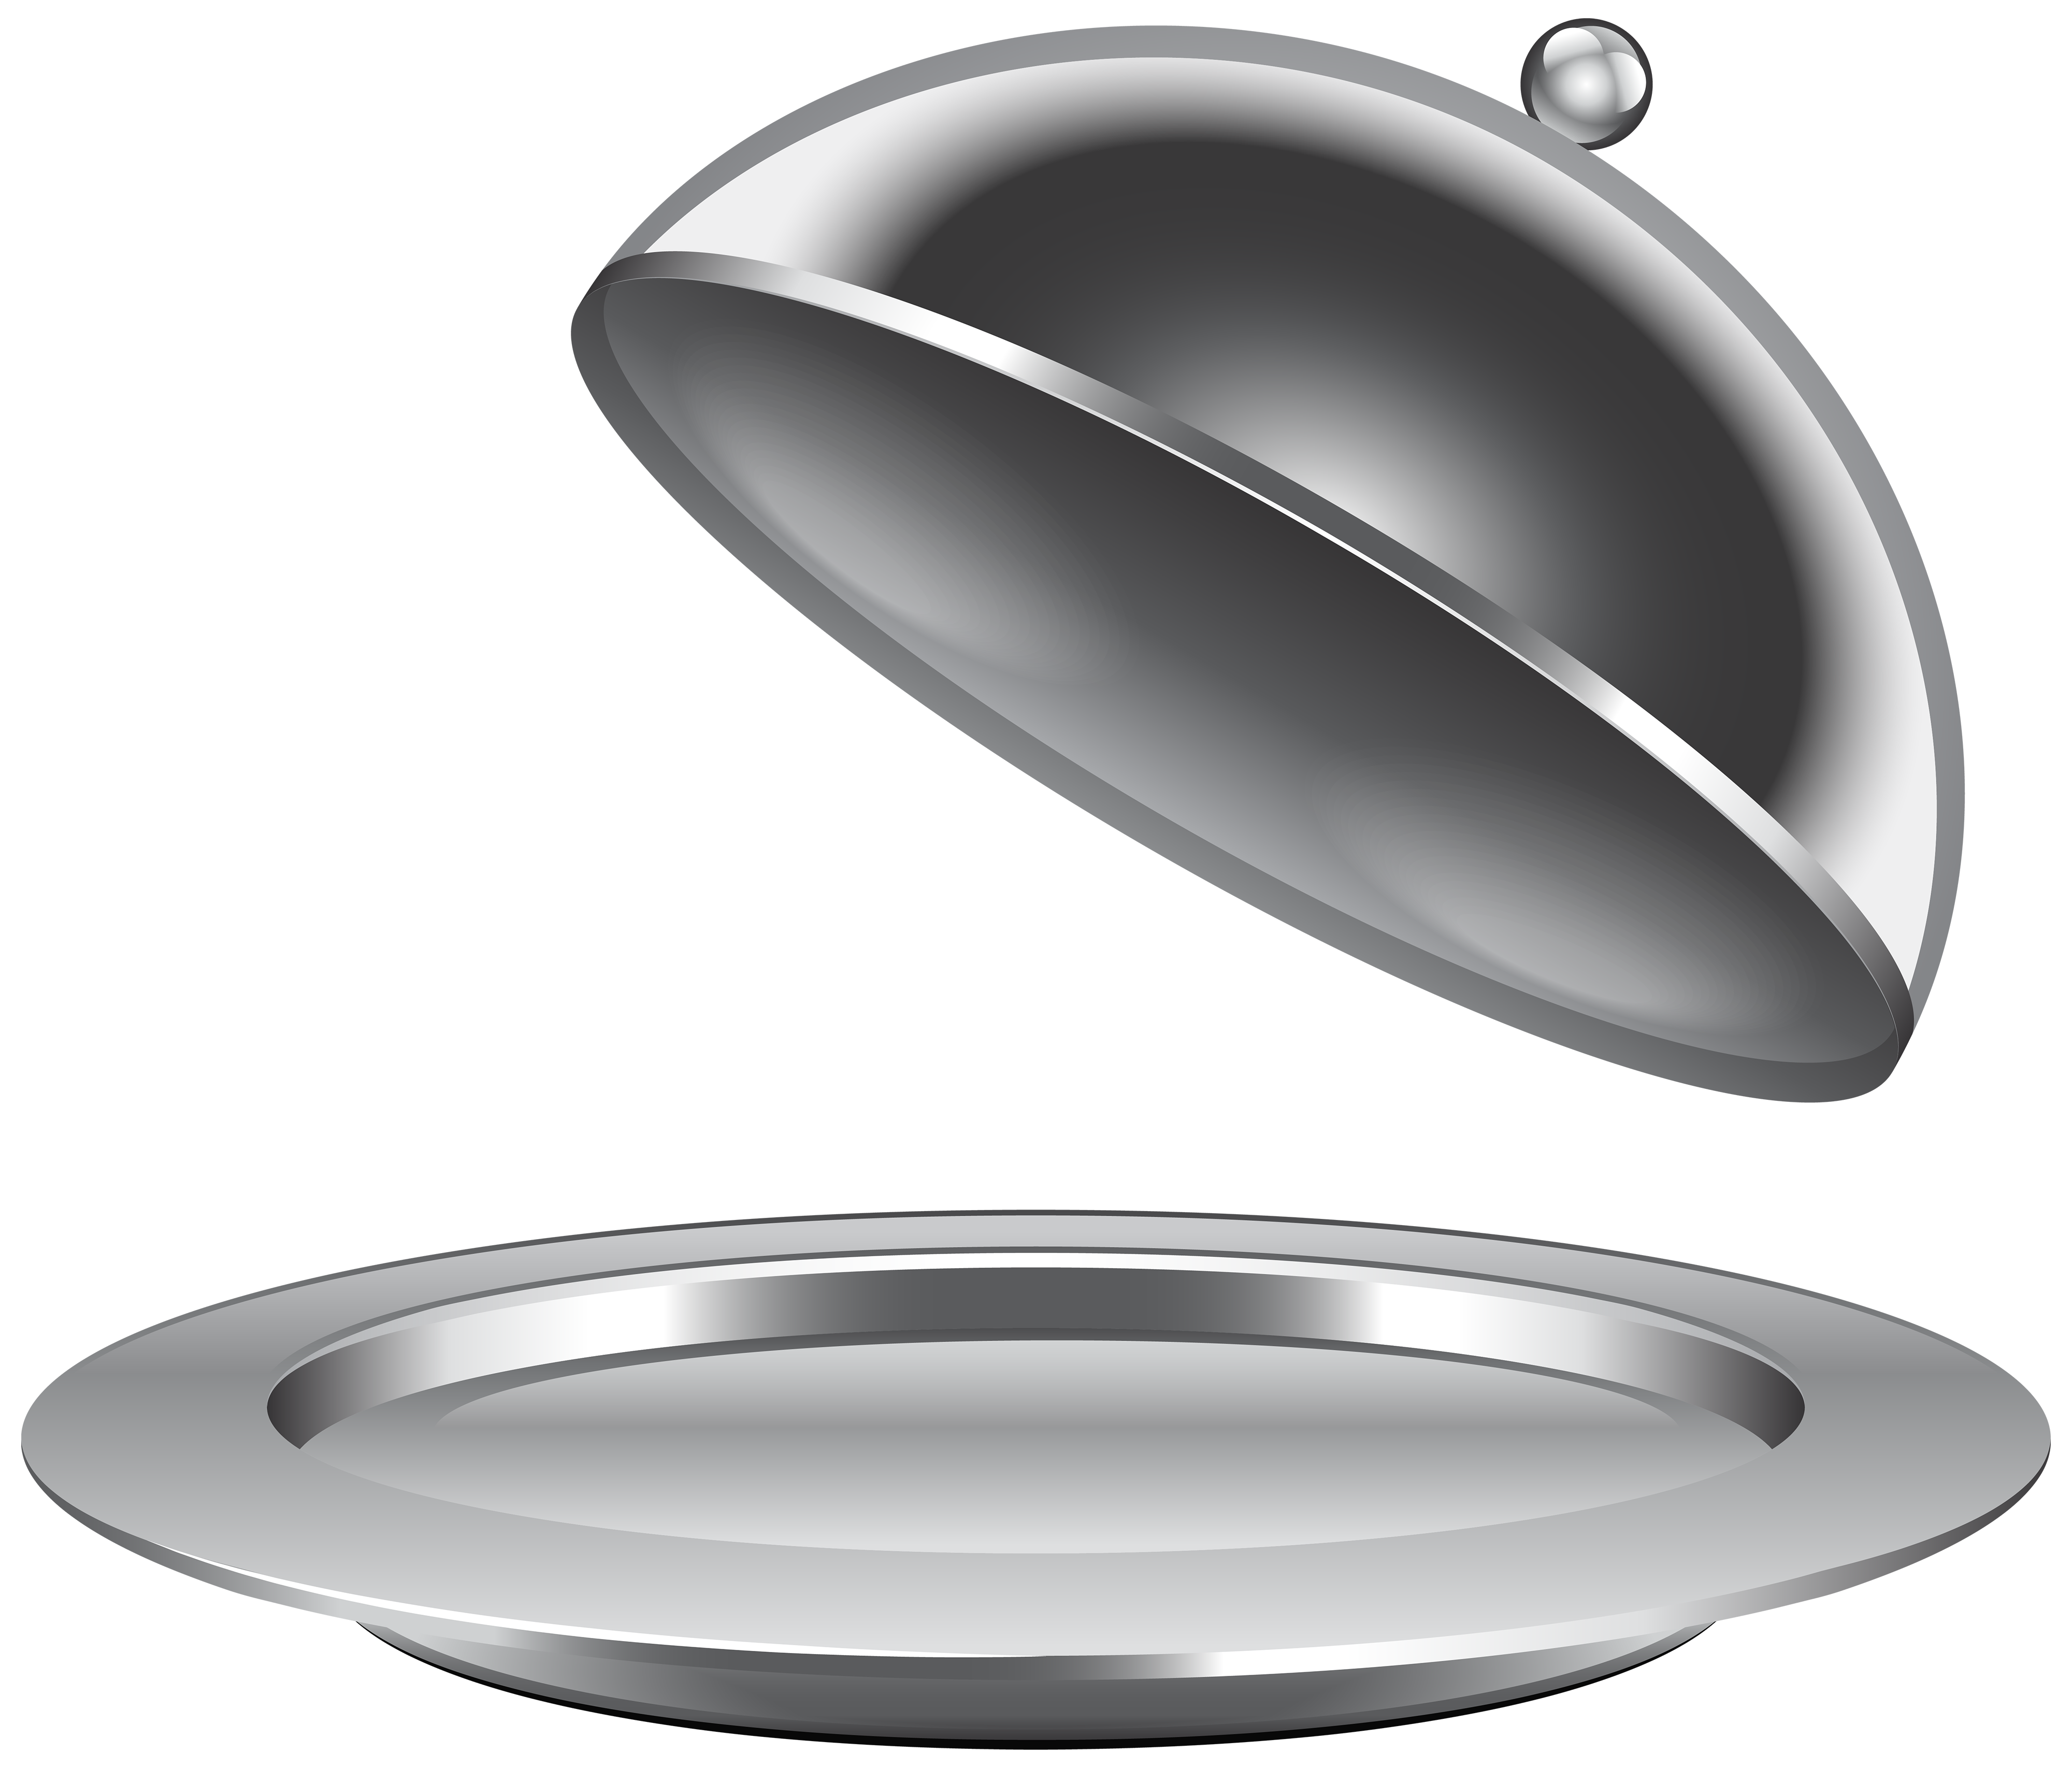 Serving Plate Clipart.